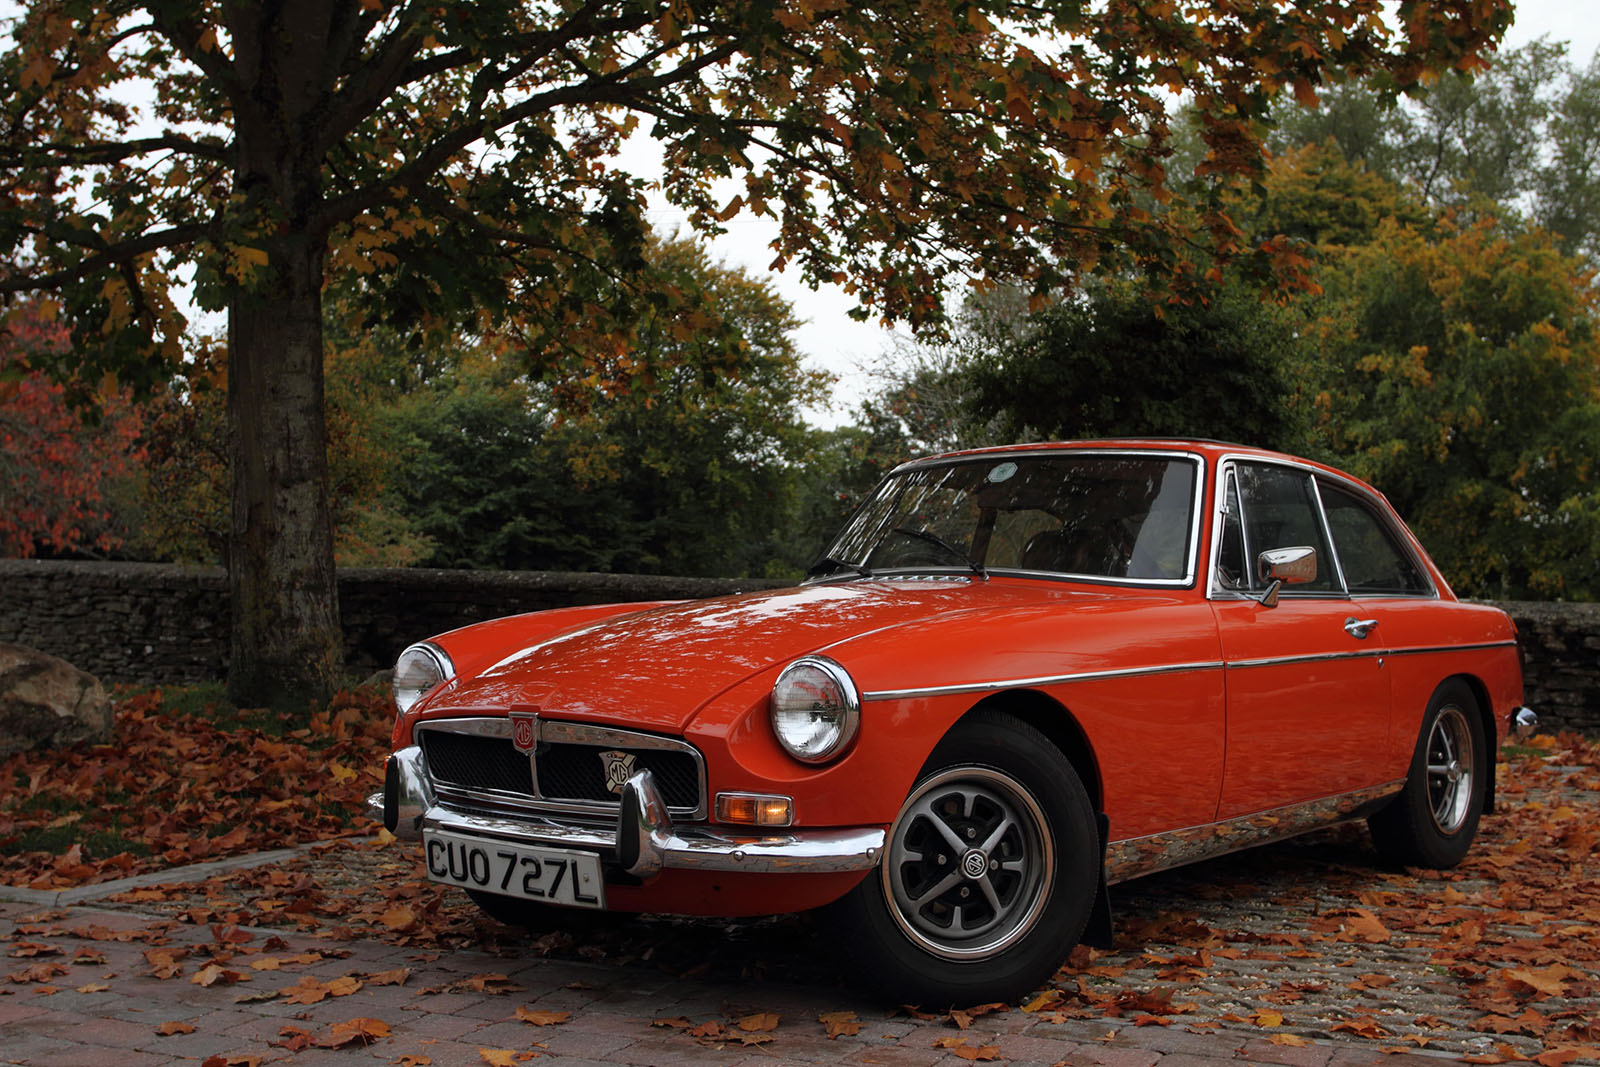 MG Motor launches campaign seeking MG classic car owners - Namaste Car